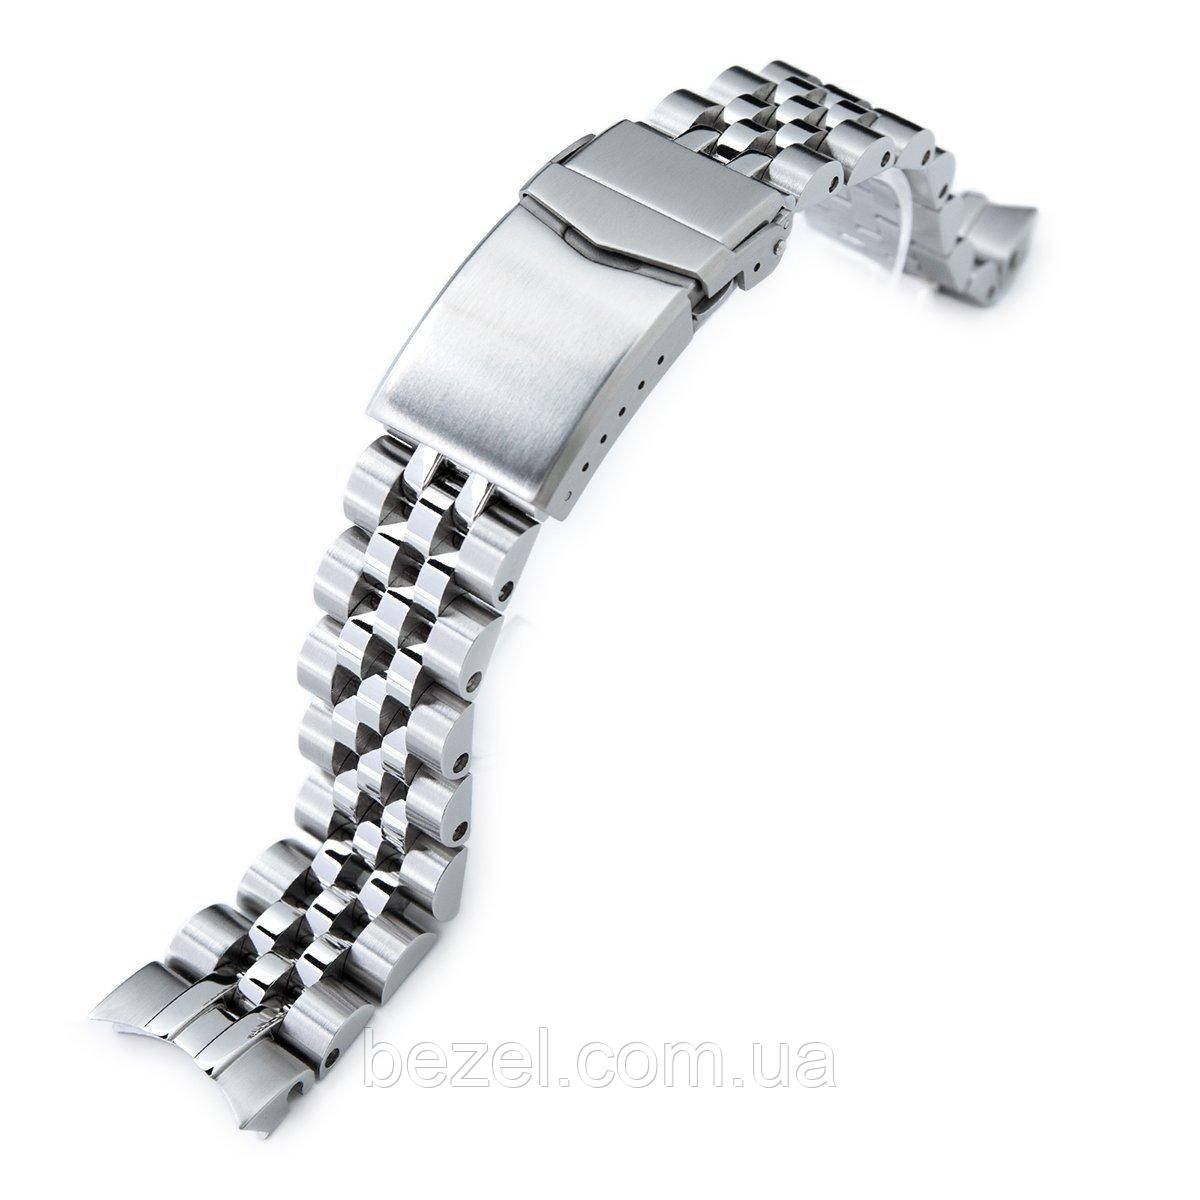 20mm ANGUS Jubilee 316L Stainless Steel Watch Bracelet for Seiko SARB033, Brushed, V-Clasp